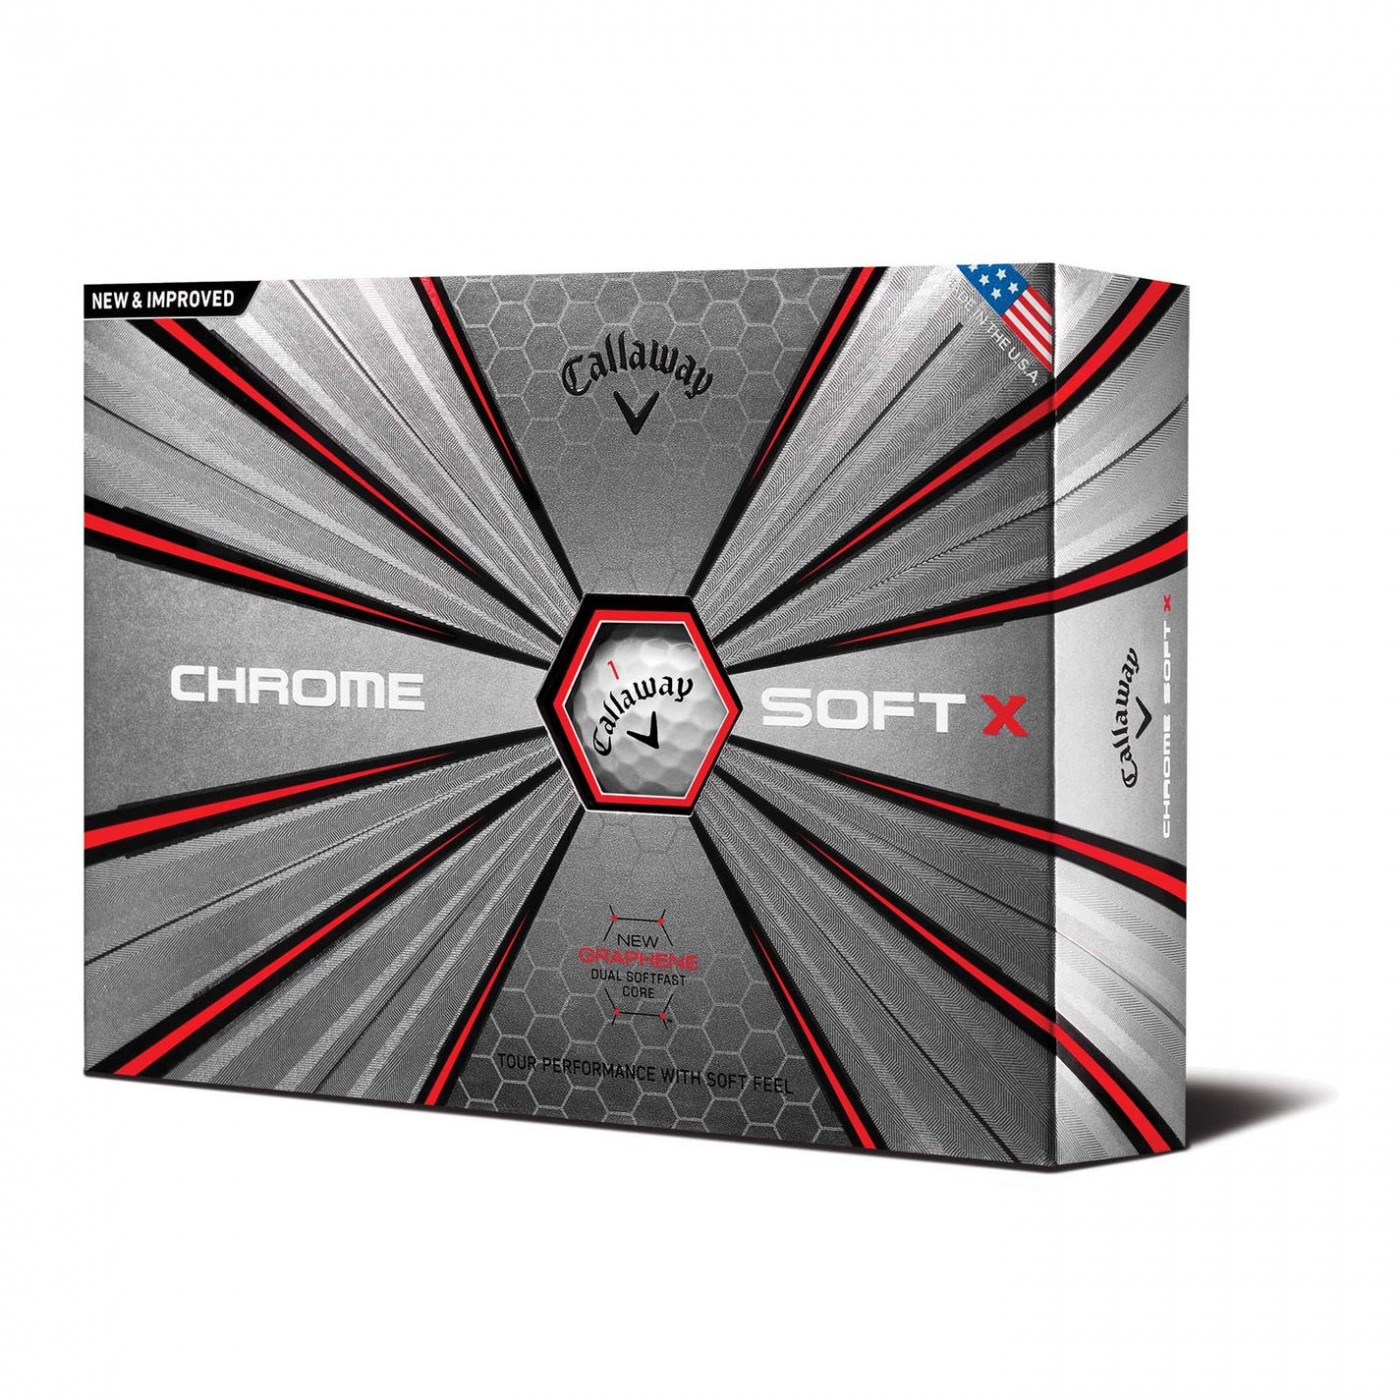 Callaway Chrom Soft X 12 Pack Golf Balls